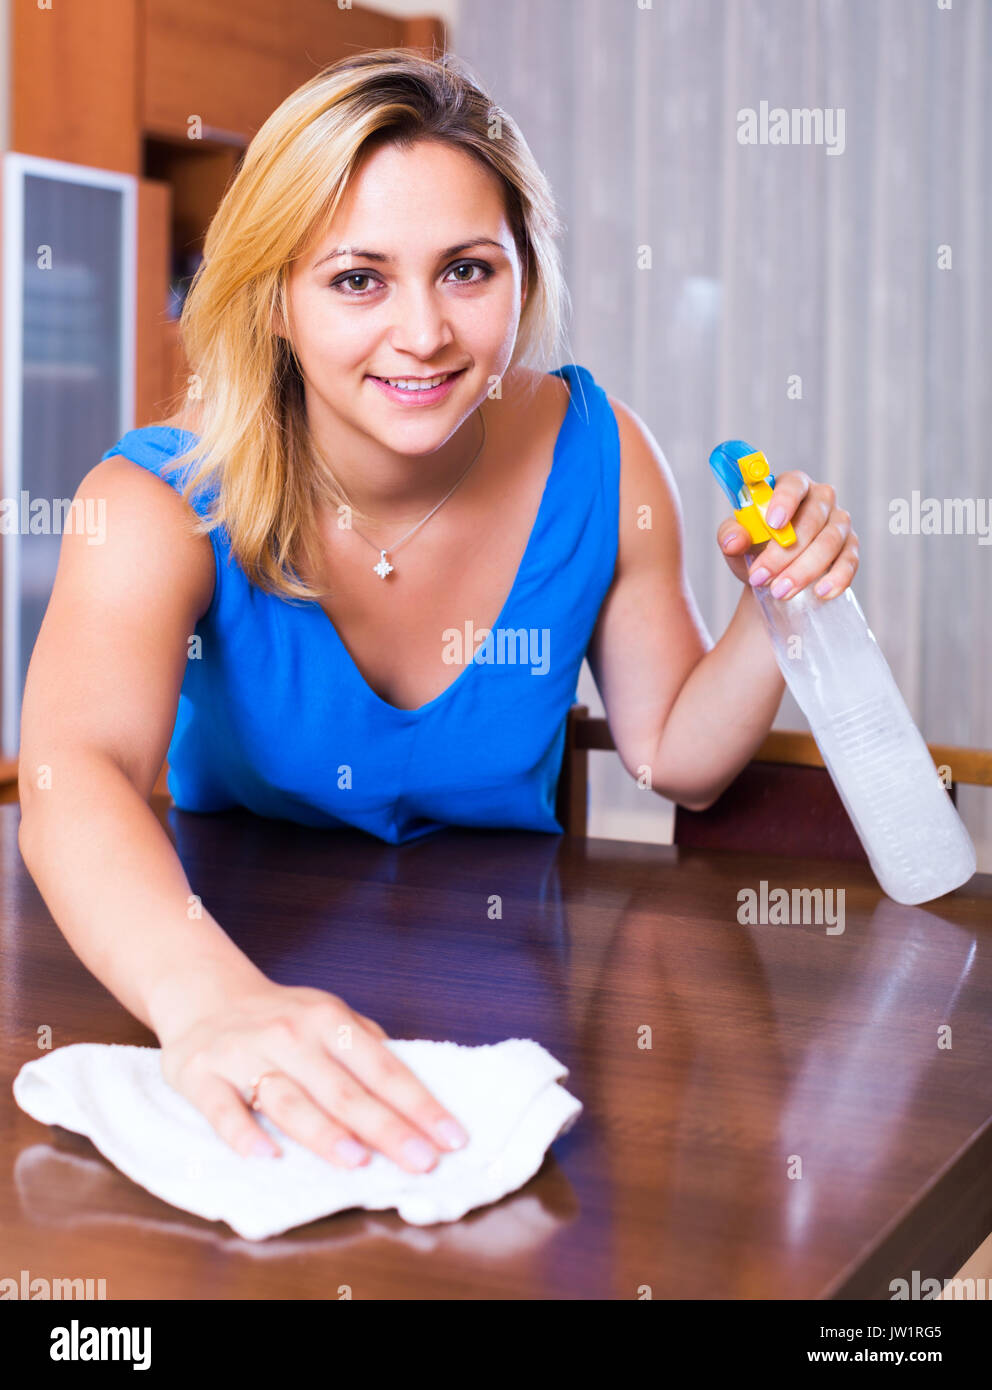 dusting furniture. Dusting Furniture. Portrait Of Ordinary Girl In Blue Blouse Furniture Indoors - Stock Image H